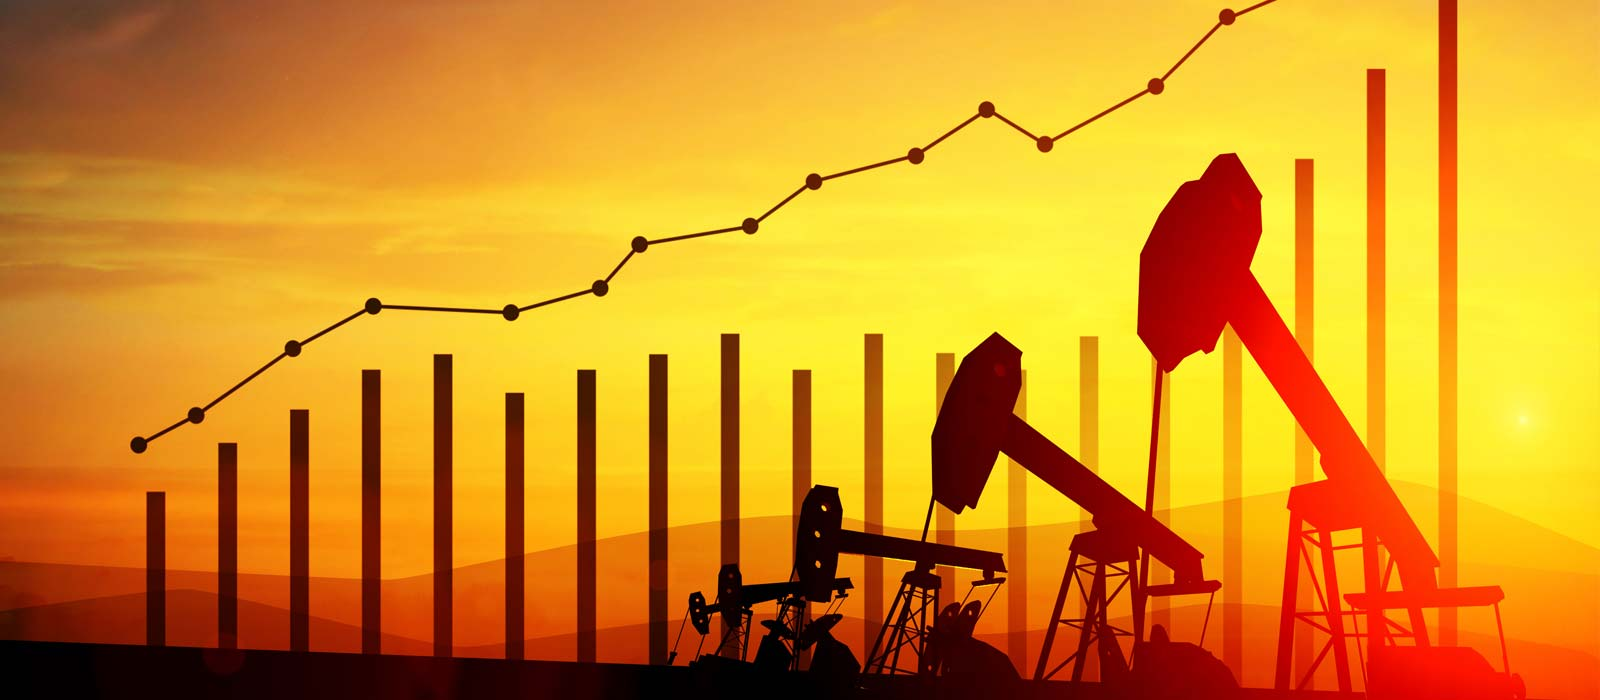 Top Concerns in Oil and Gas